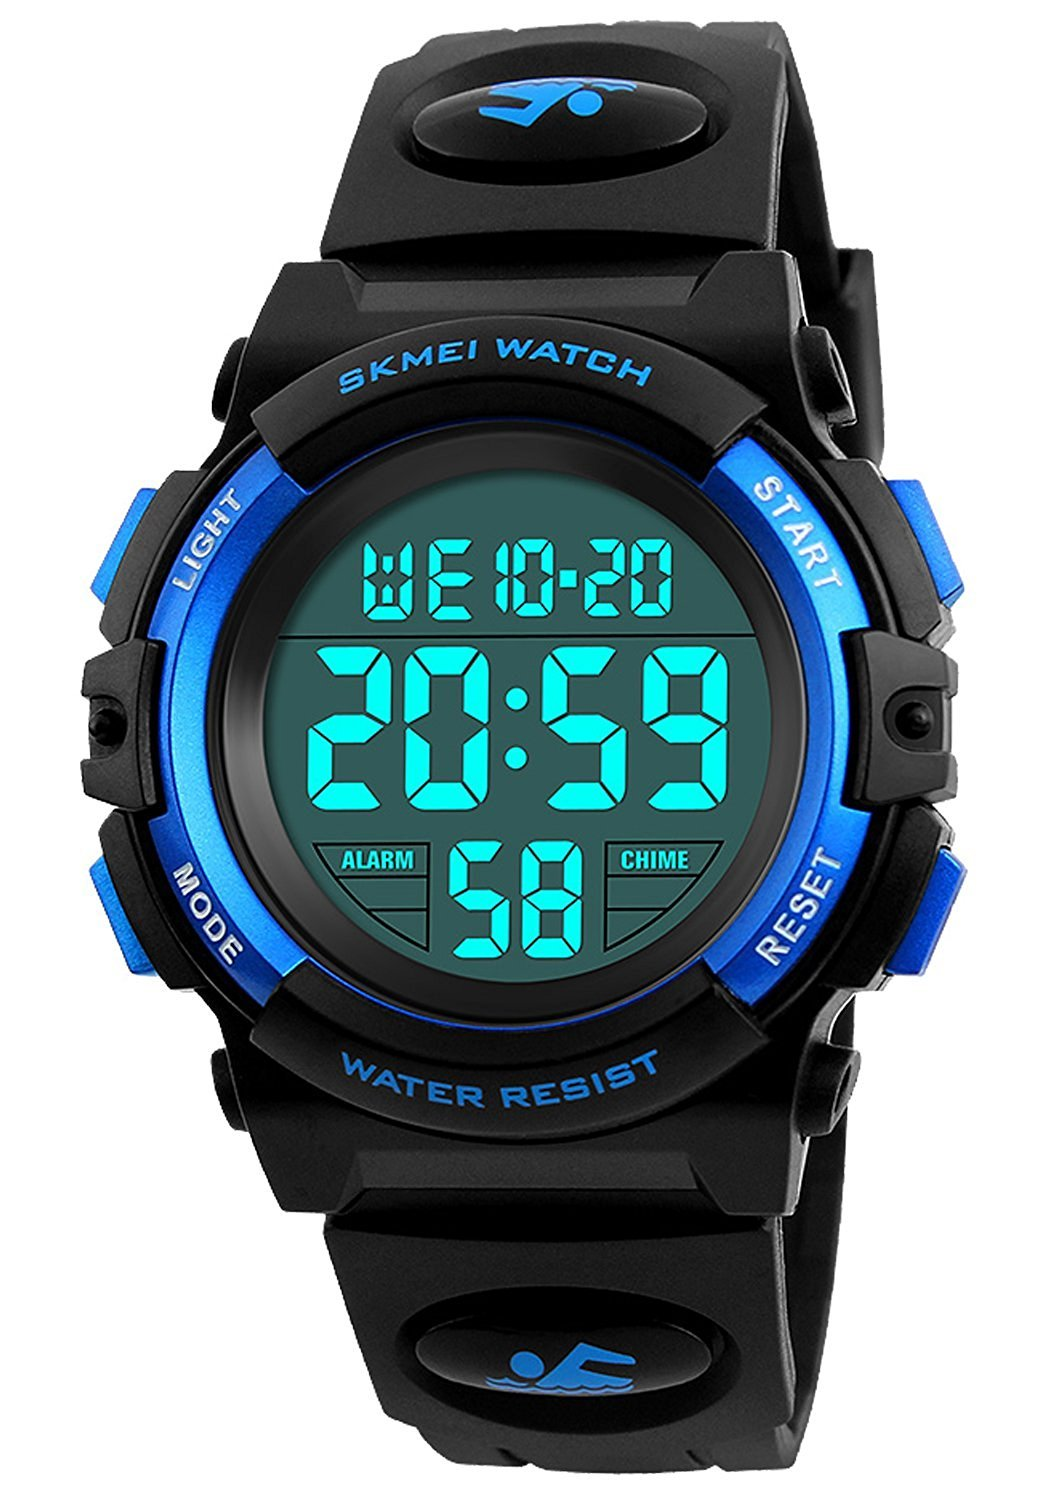 Boys Girls 50M Waterproof Watches,Sports Watch, LED Digital Watch Features Alarm, Stopwatch , Kids Watch (Blue)